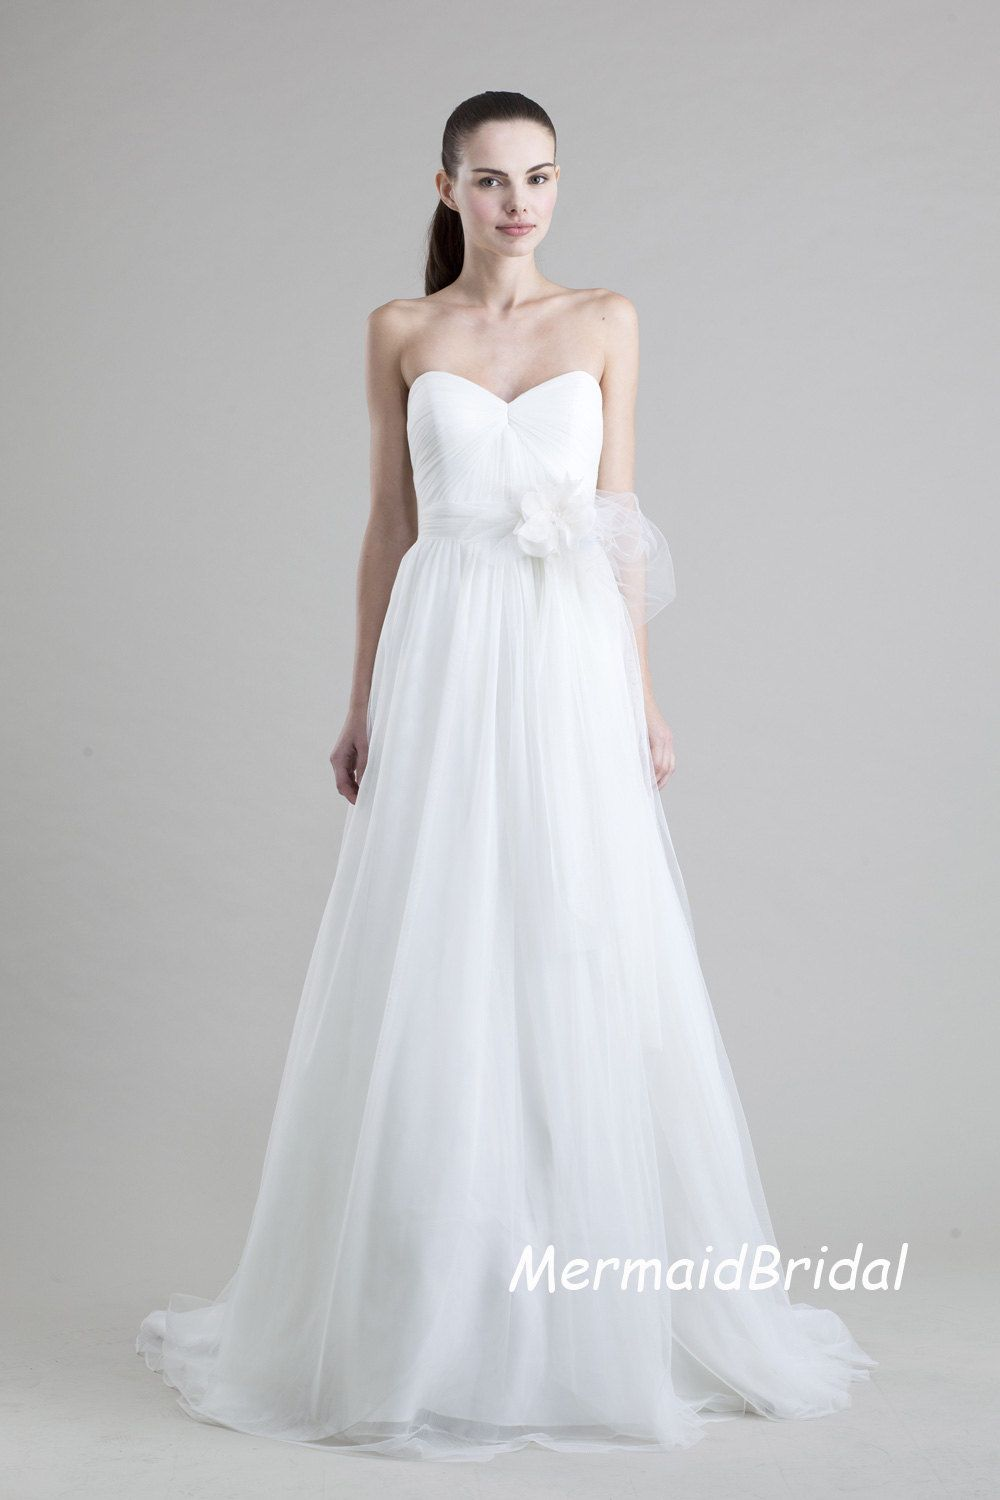 Simple tulle wedding dress, Paramount Wedding Designs and Events ...